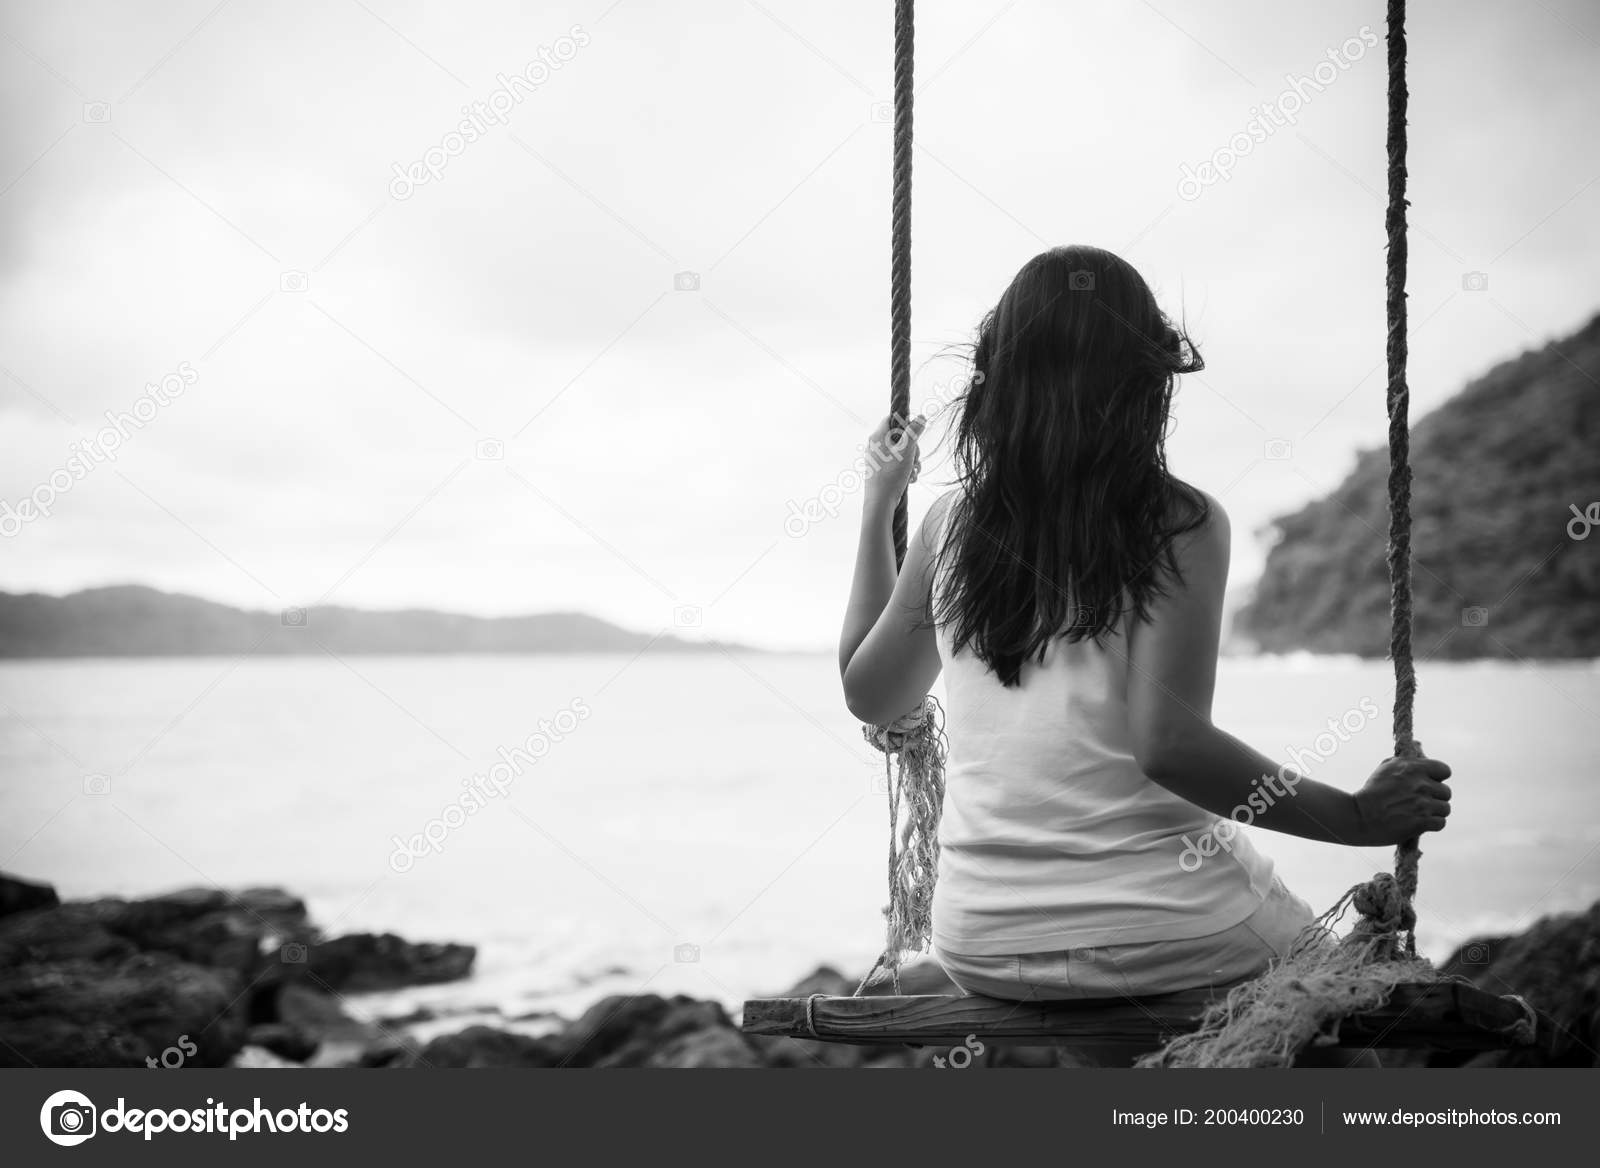 Black and white of sad and lonely woman sitting alone on a the wooden swing over the sea photo by spukkato